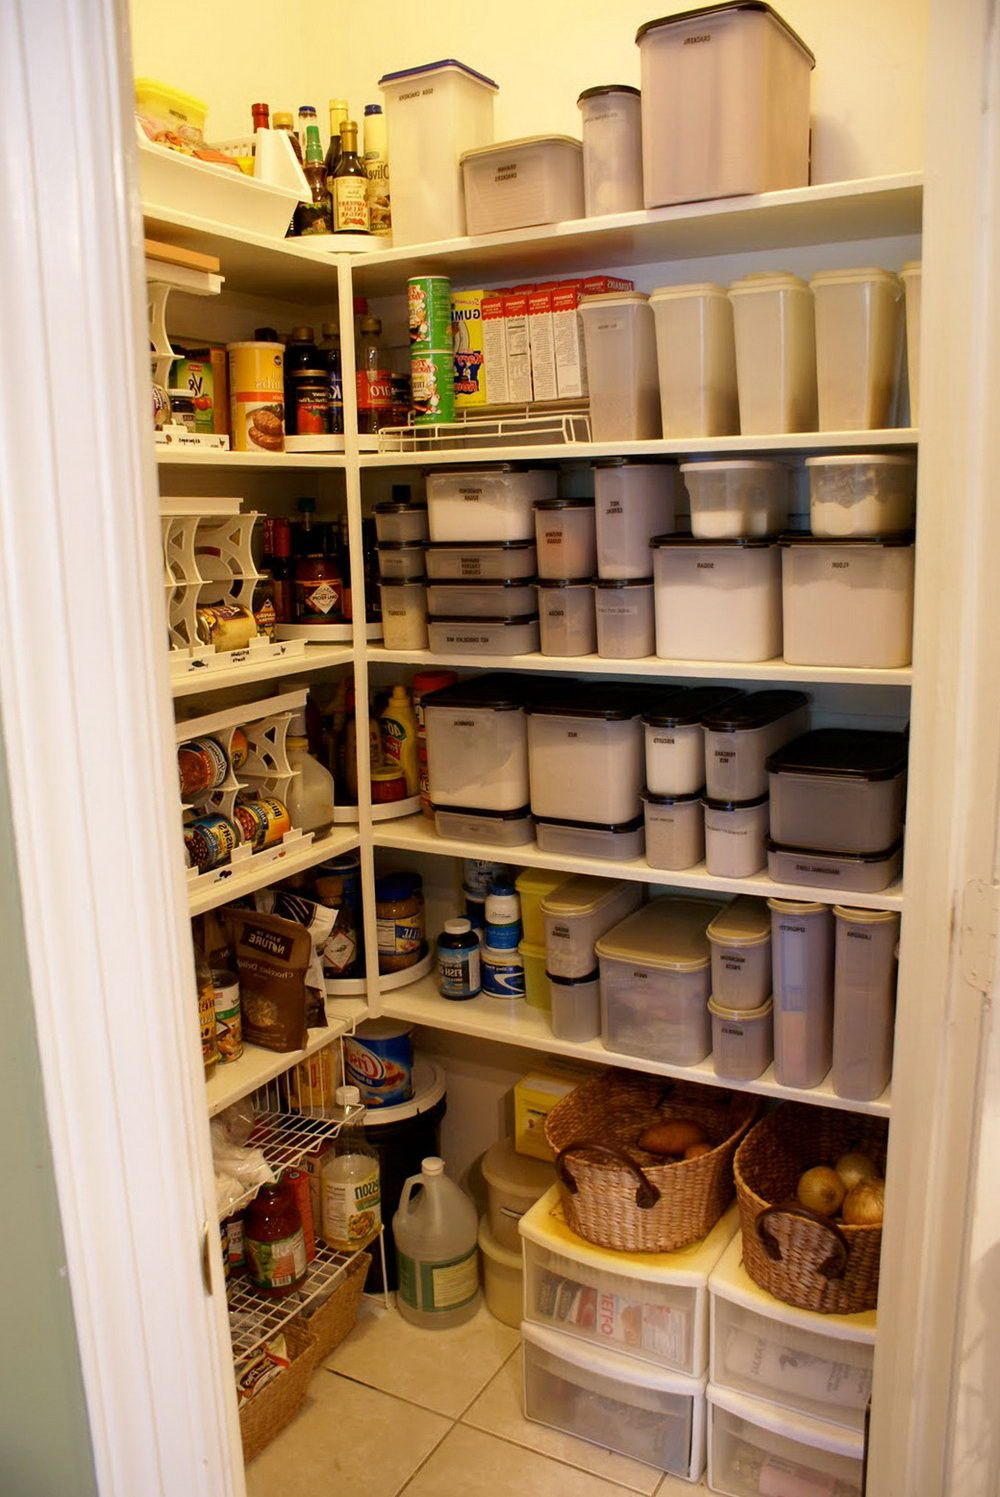 These Are The Best Kitchen Pantry Organizers Ikea Download And Save This Ideas About 20 Of The Best I Ikea Pantry Organization Pantry Organization Ikea Pantry